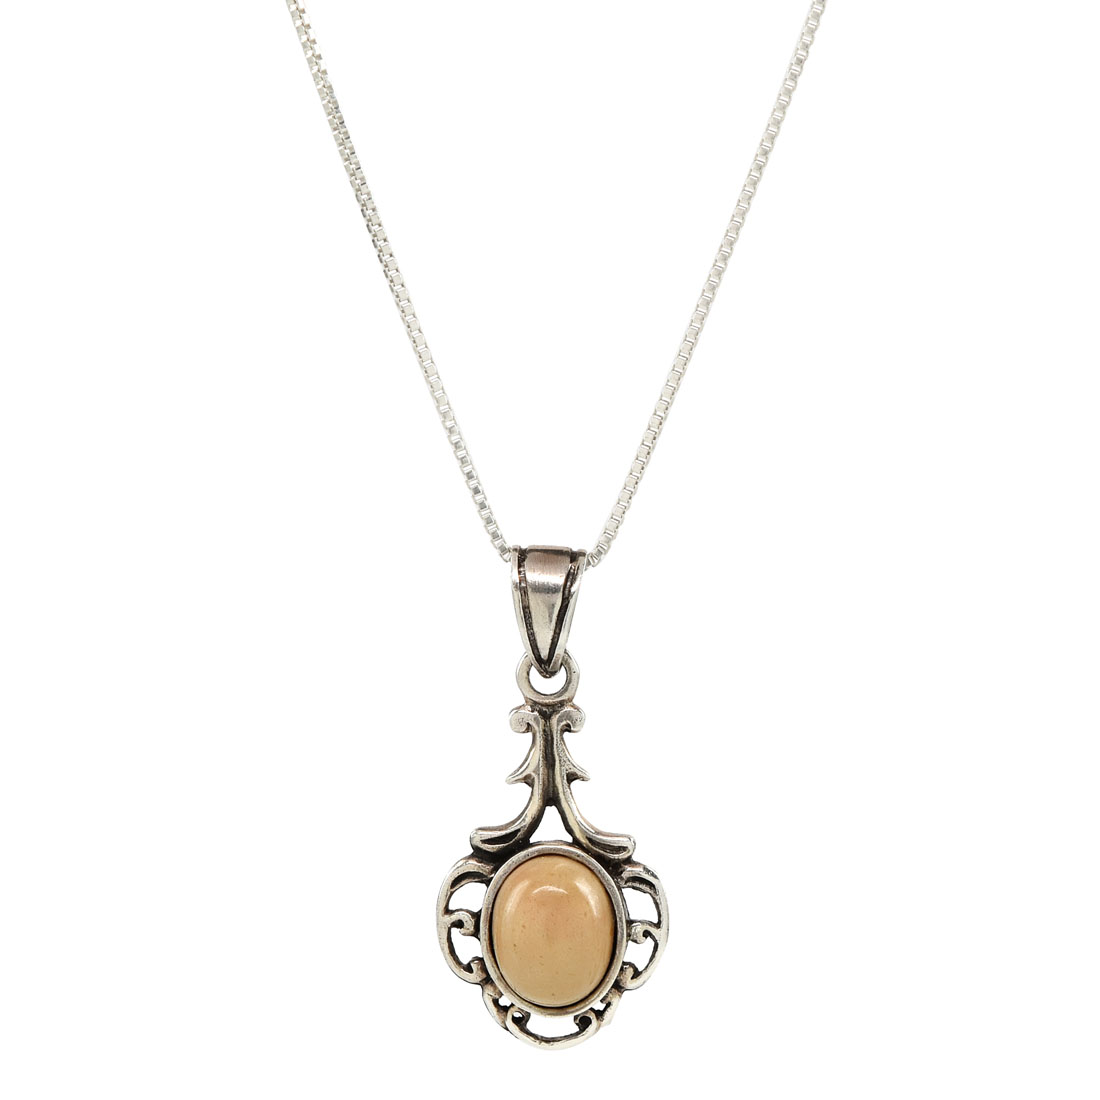 traditional sterling silver pendant with oval cabochon of